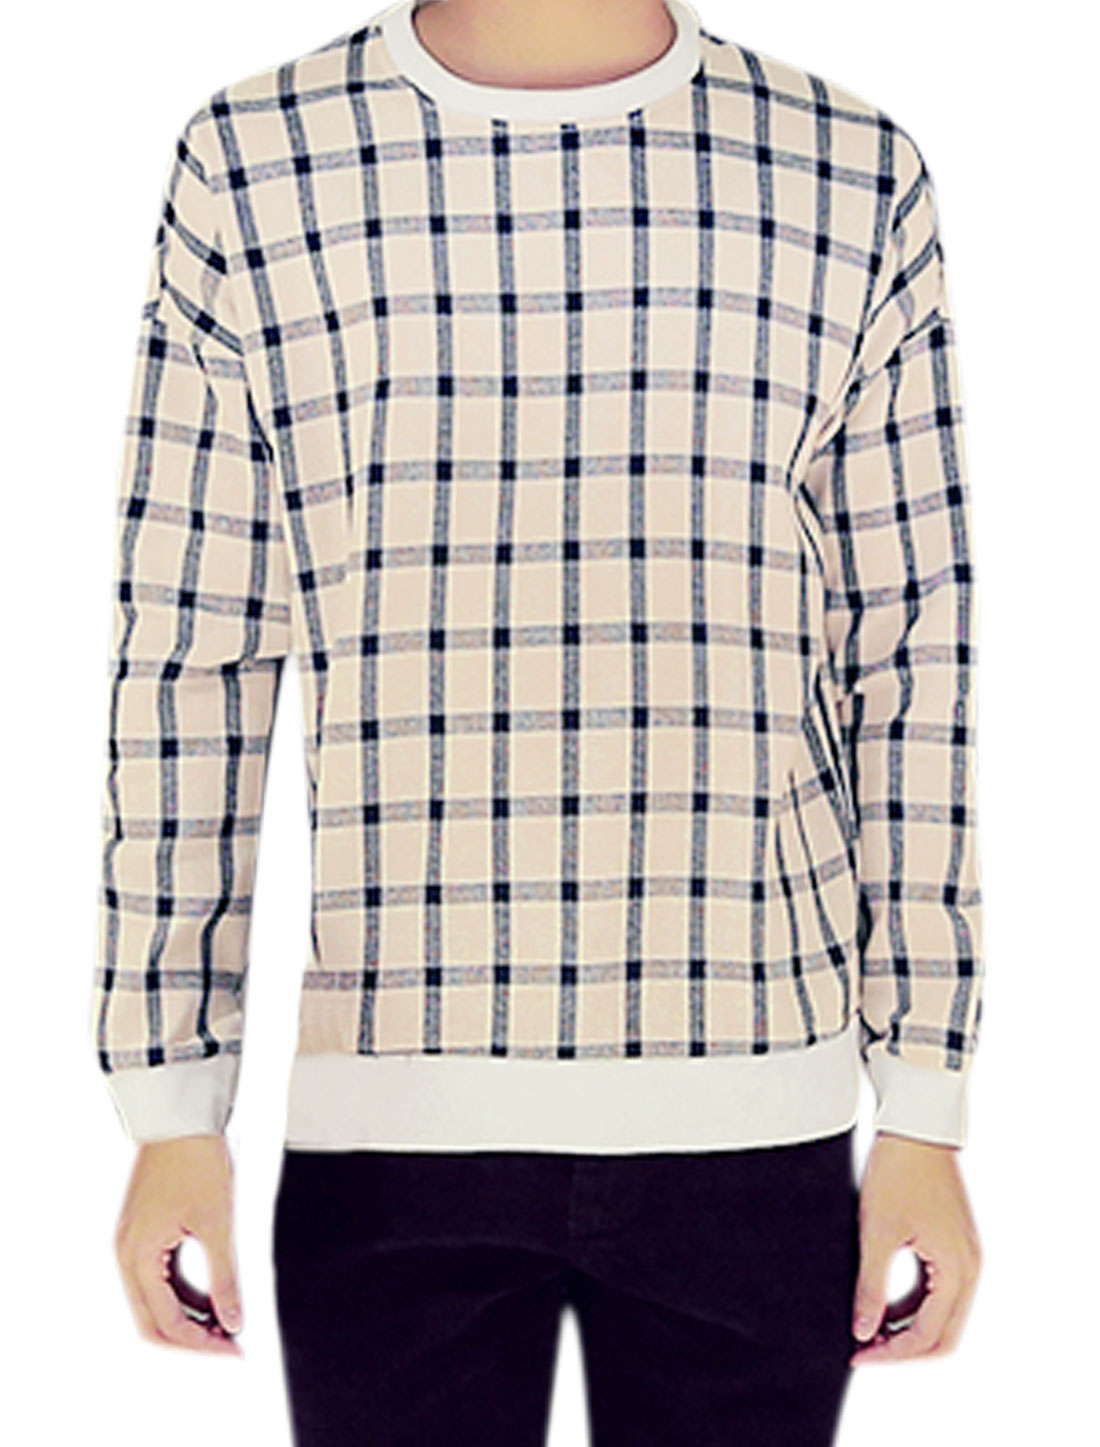 Men Crew Neck Slim Fit Long Sleeves Checks Print Casual T-Shirt Blue Beige M